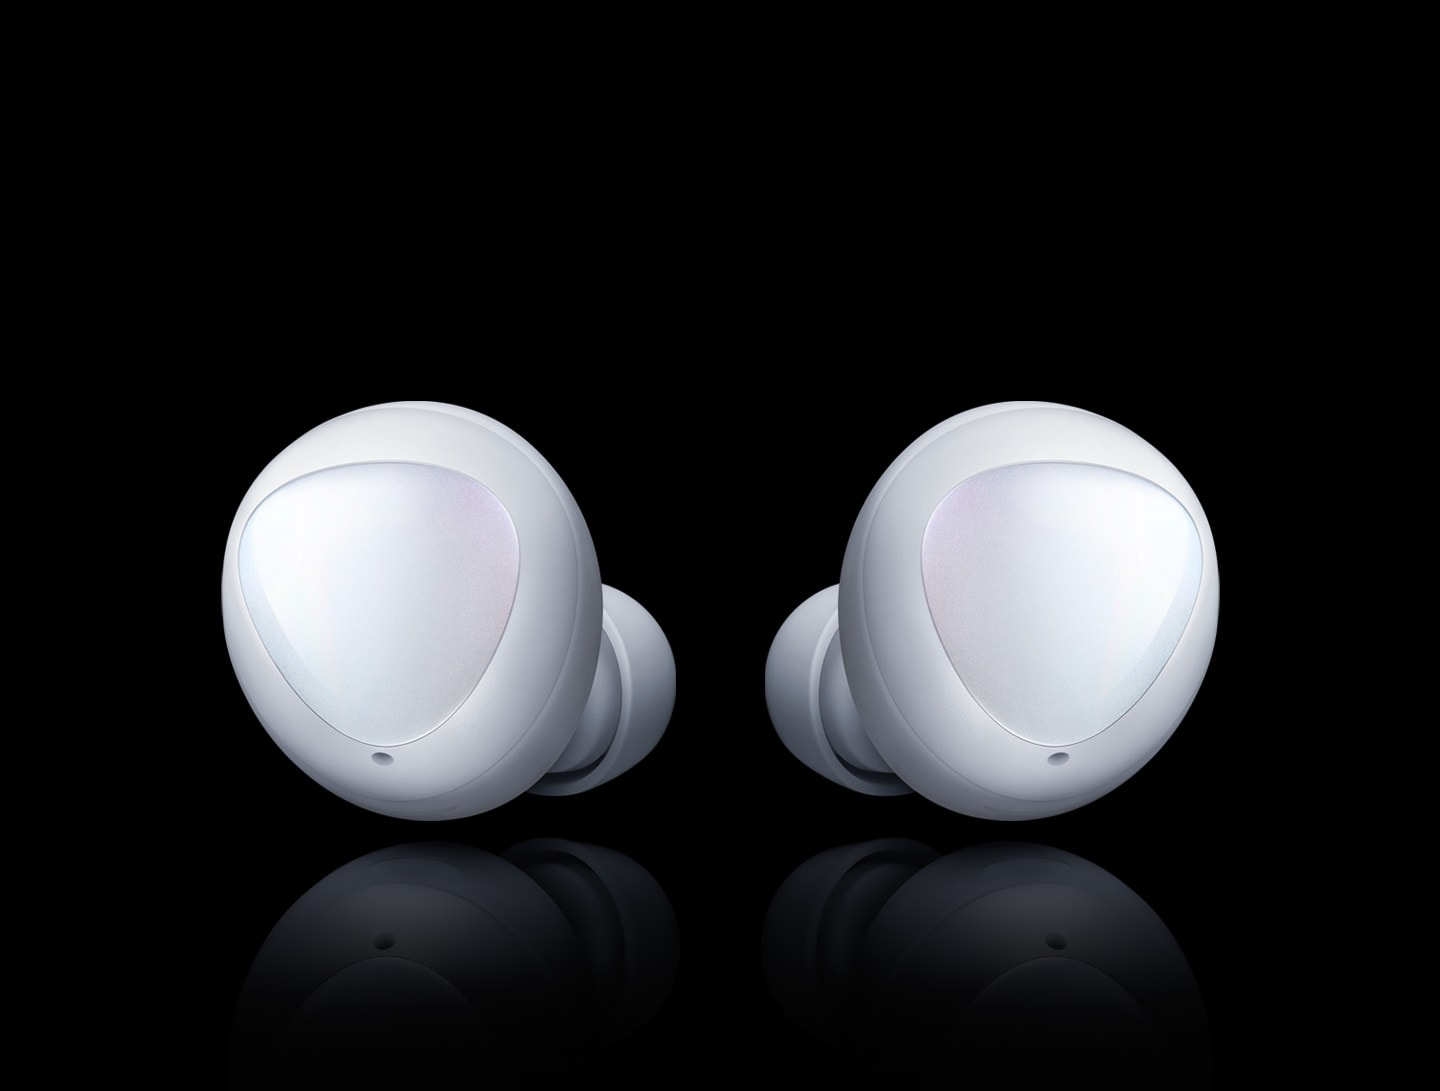 The next generation Galaxy Buds